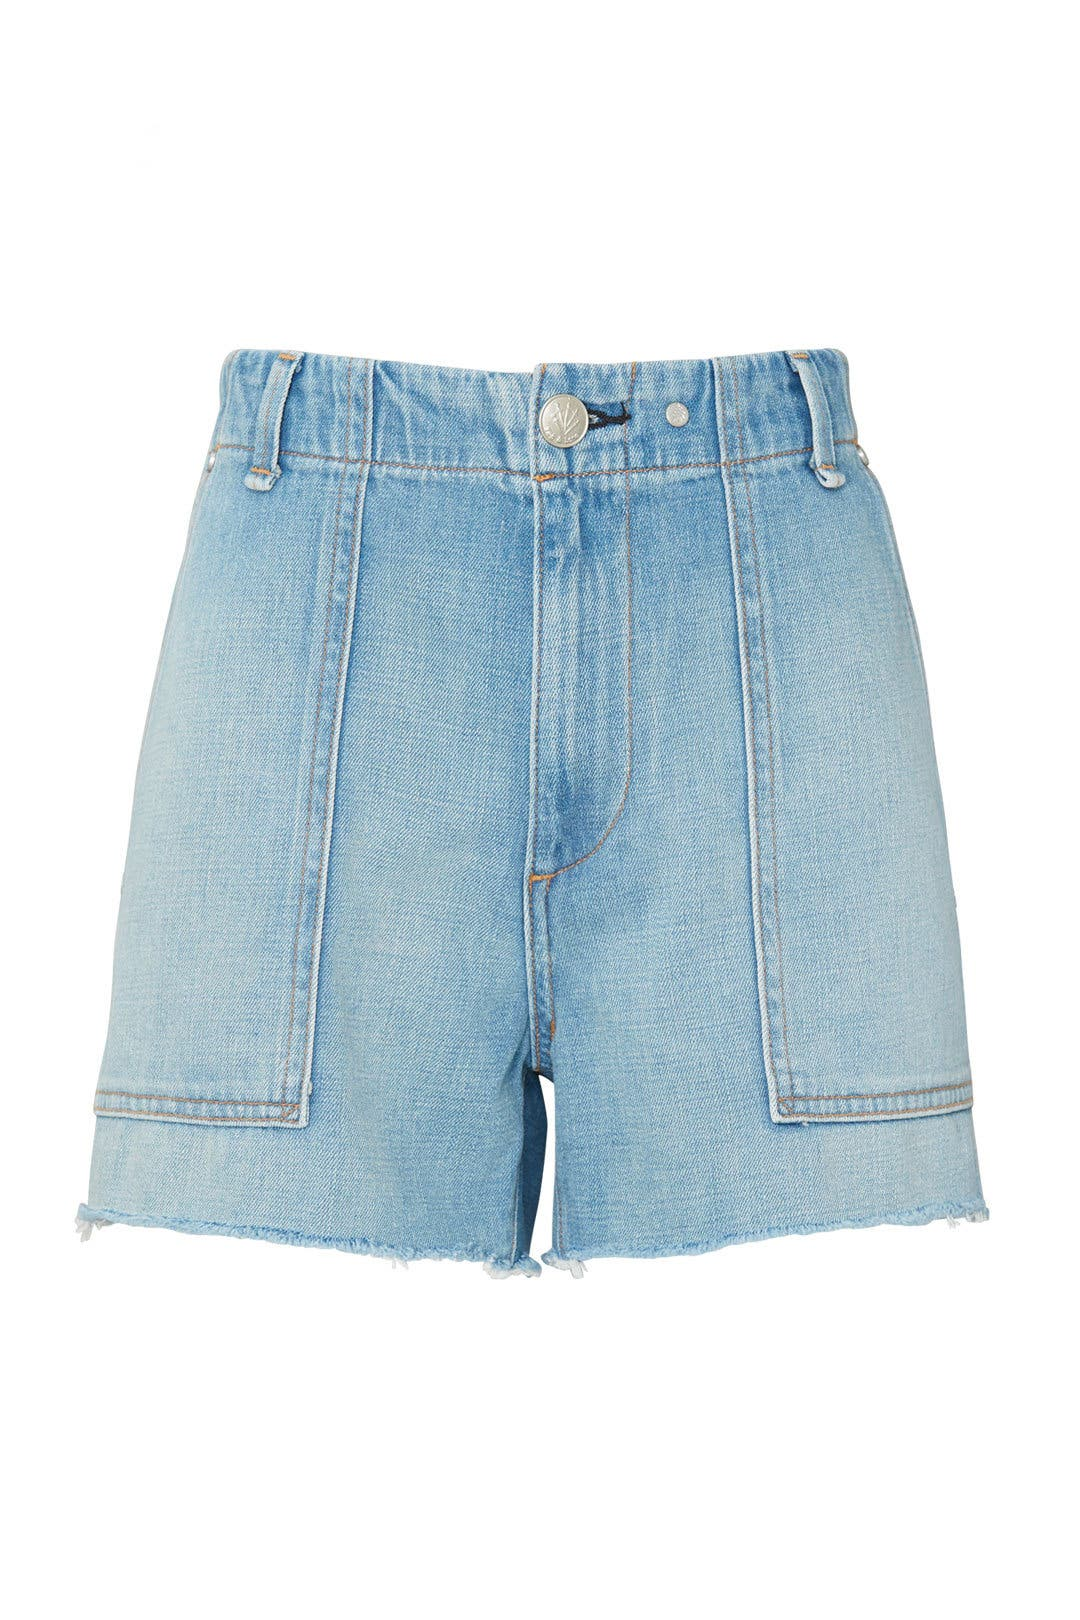 3f2783ffcf0 Super High Rise Army Shorts by rag & bone JEAN for $35 | Rent the Runway